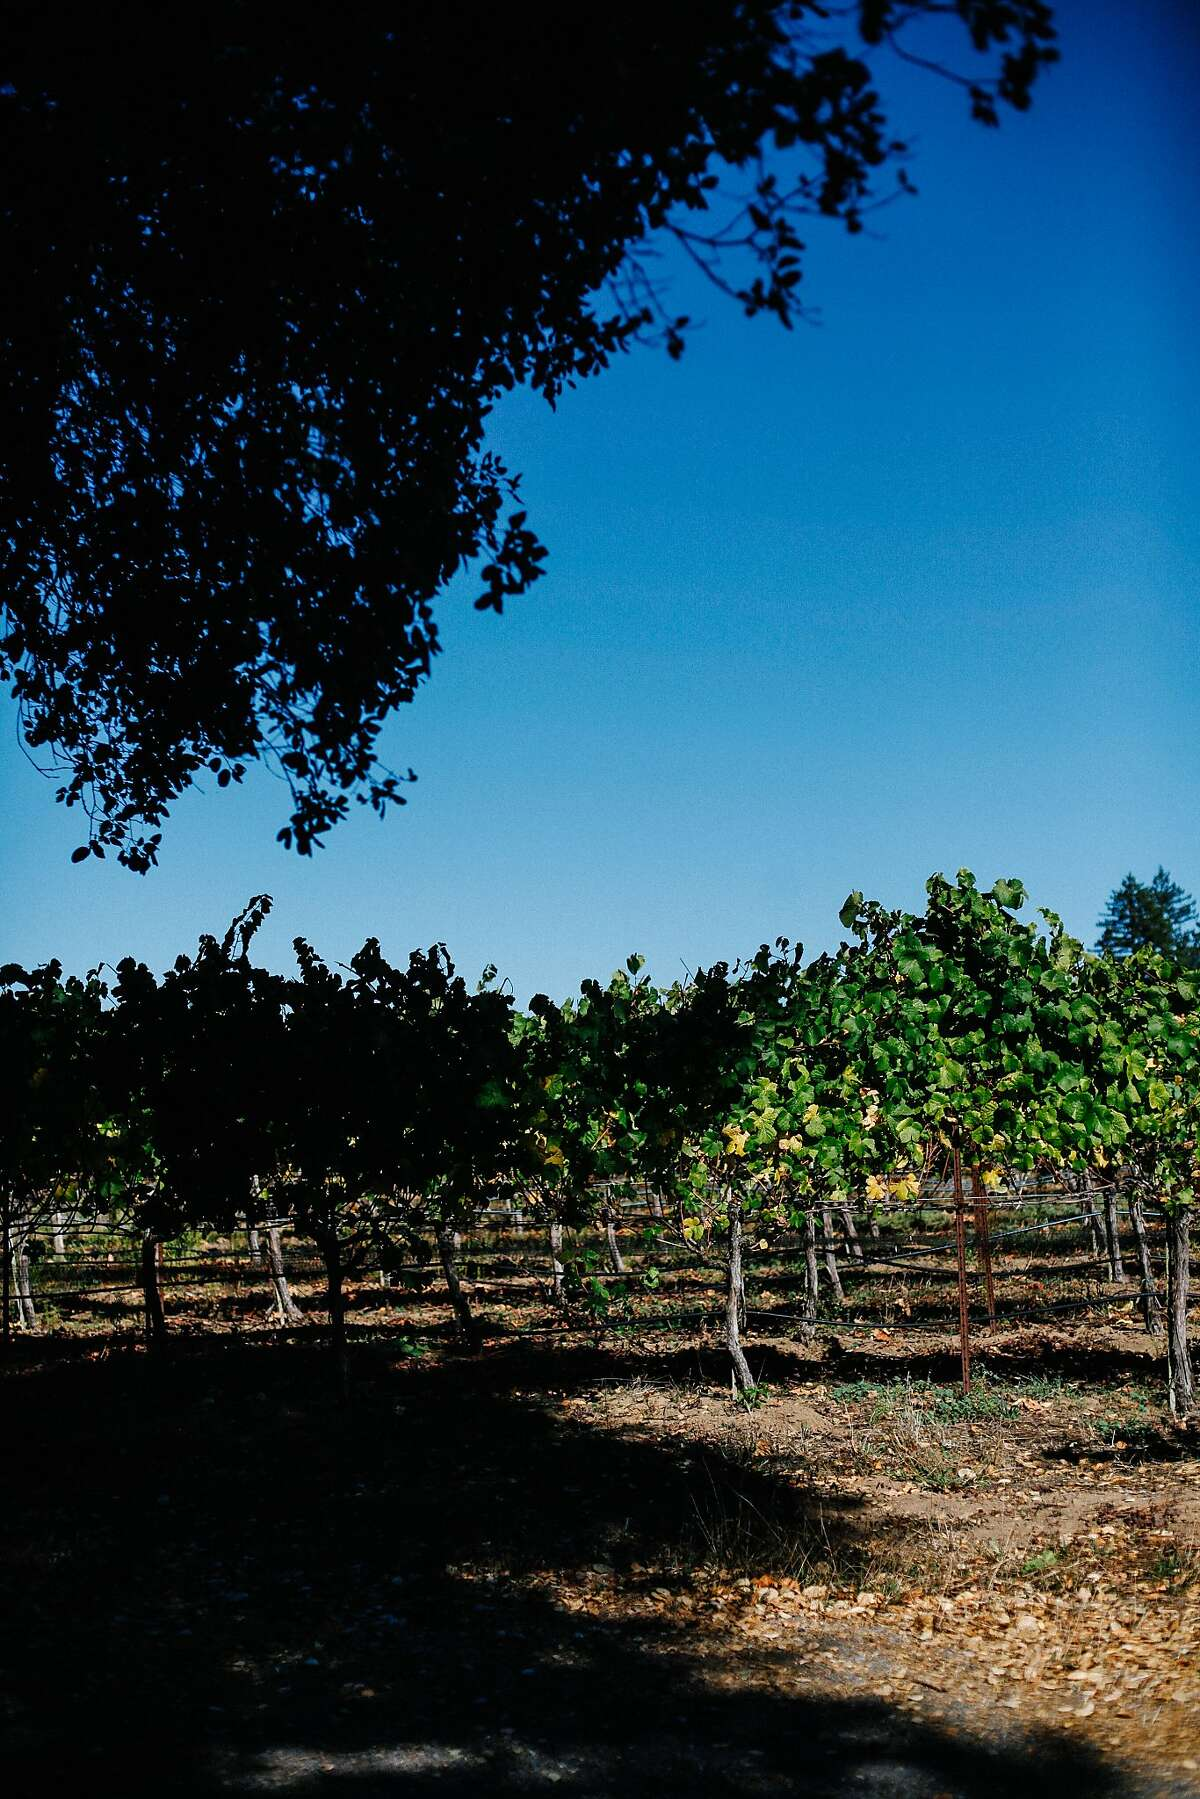 One of the blocks at the Cobb vineyard in Occidental.